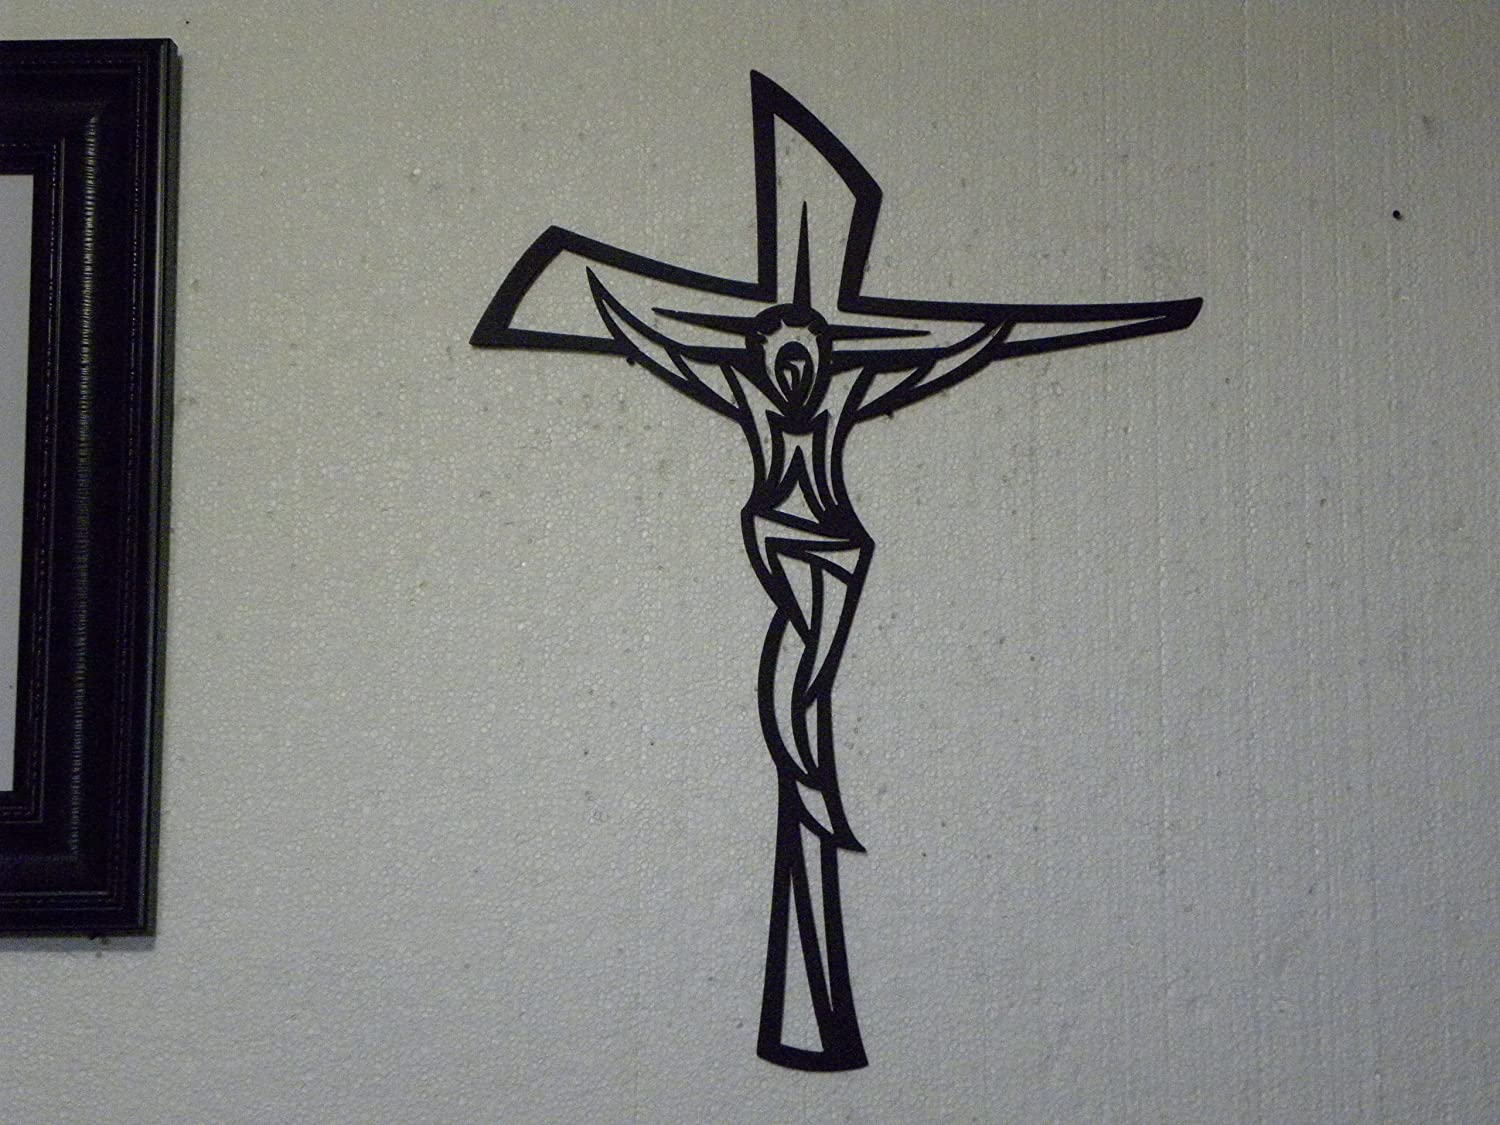 Amazon.com: Wall Cross Modern Metal Wall Sign Religious Home Decor: Home U0026  Kitchen